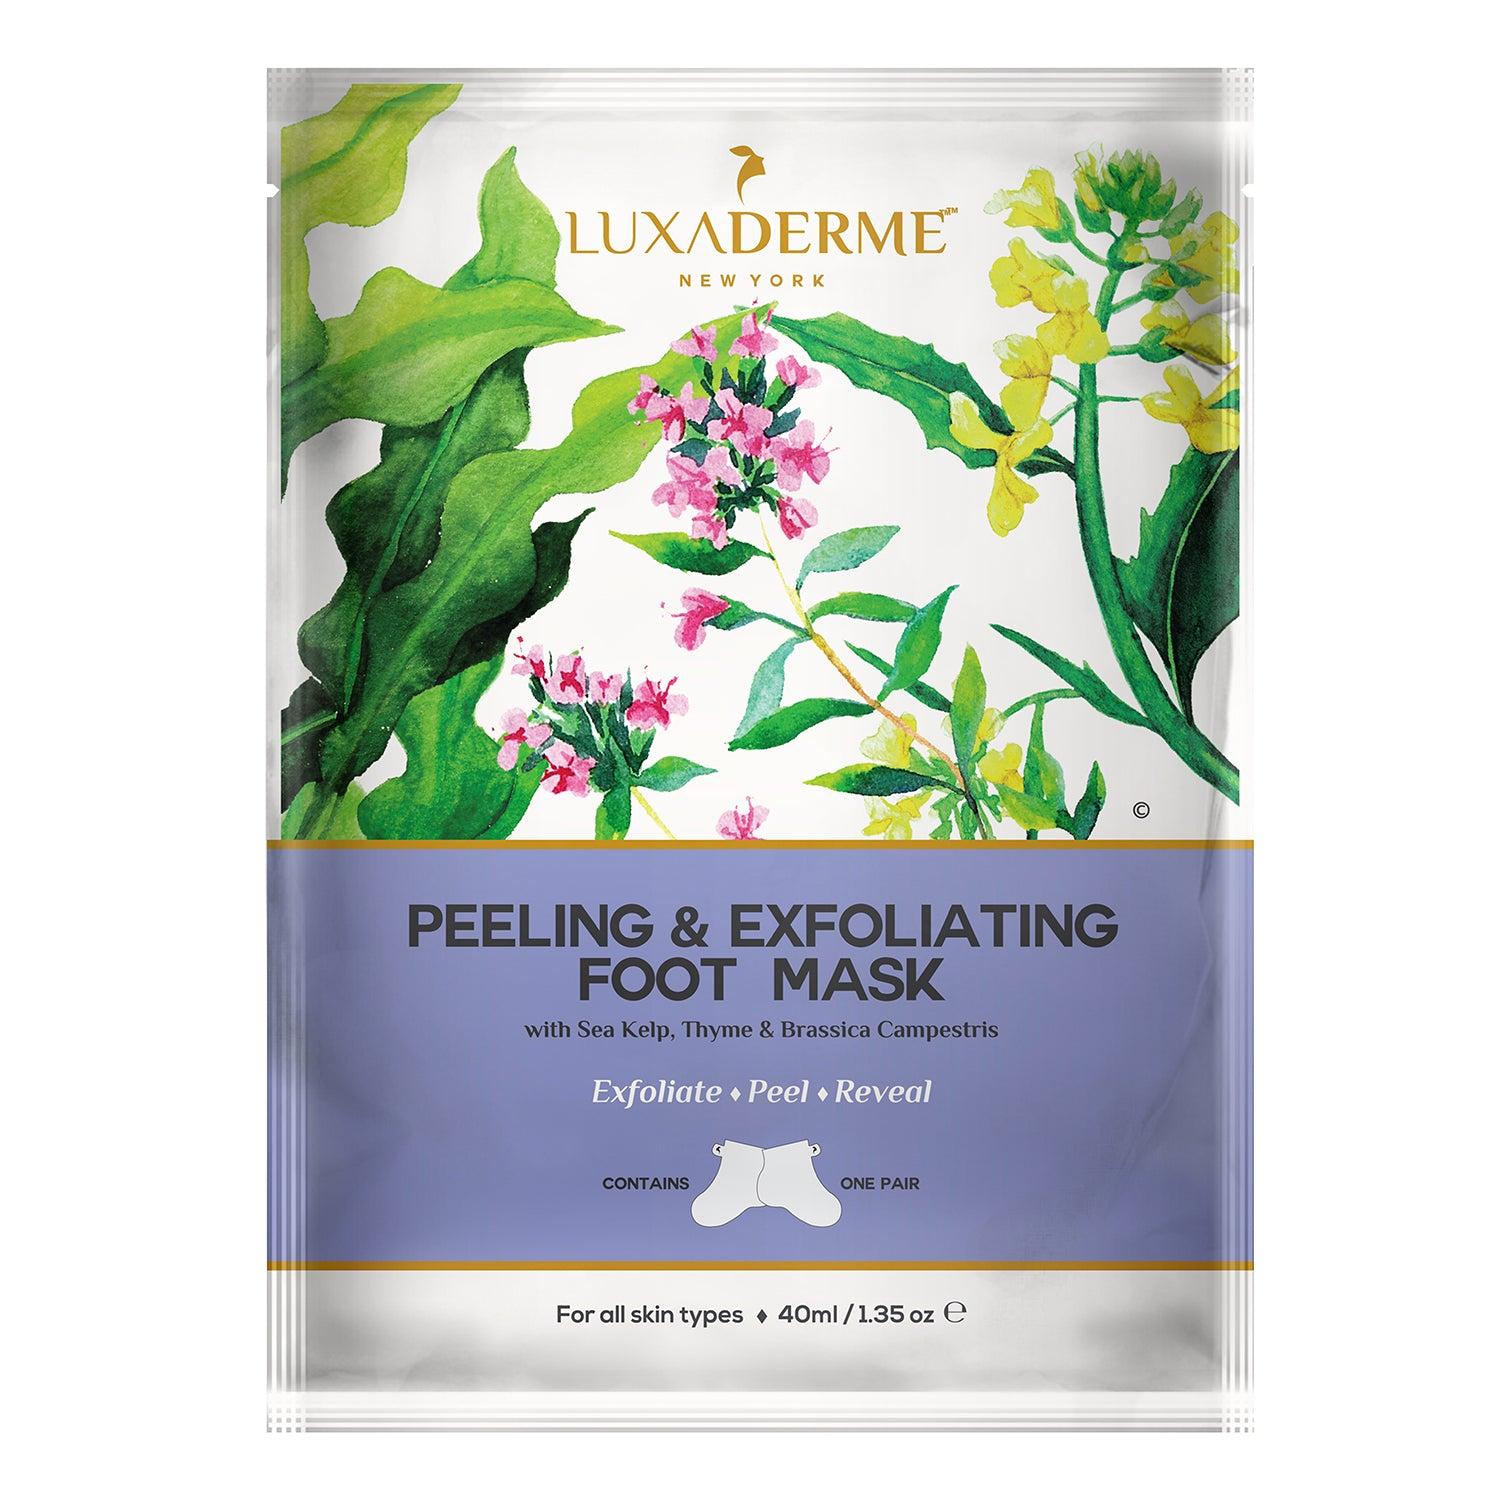 LuxaDerme Peeling & Exfoliating Foot Mask